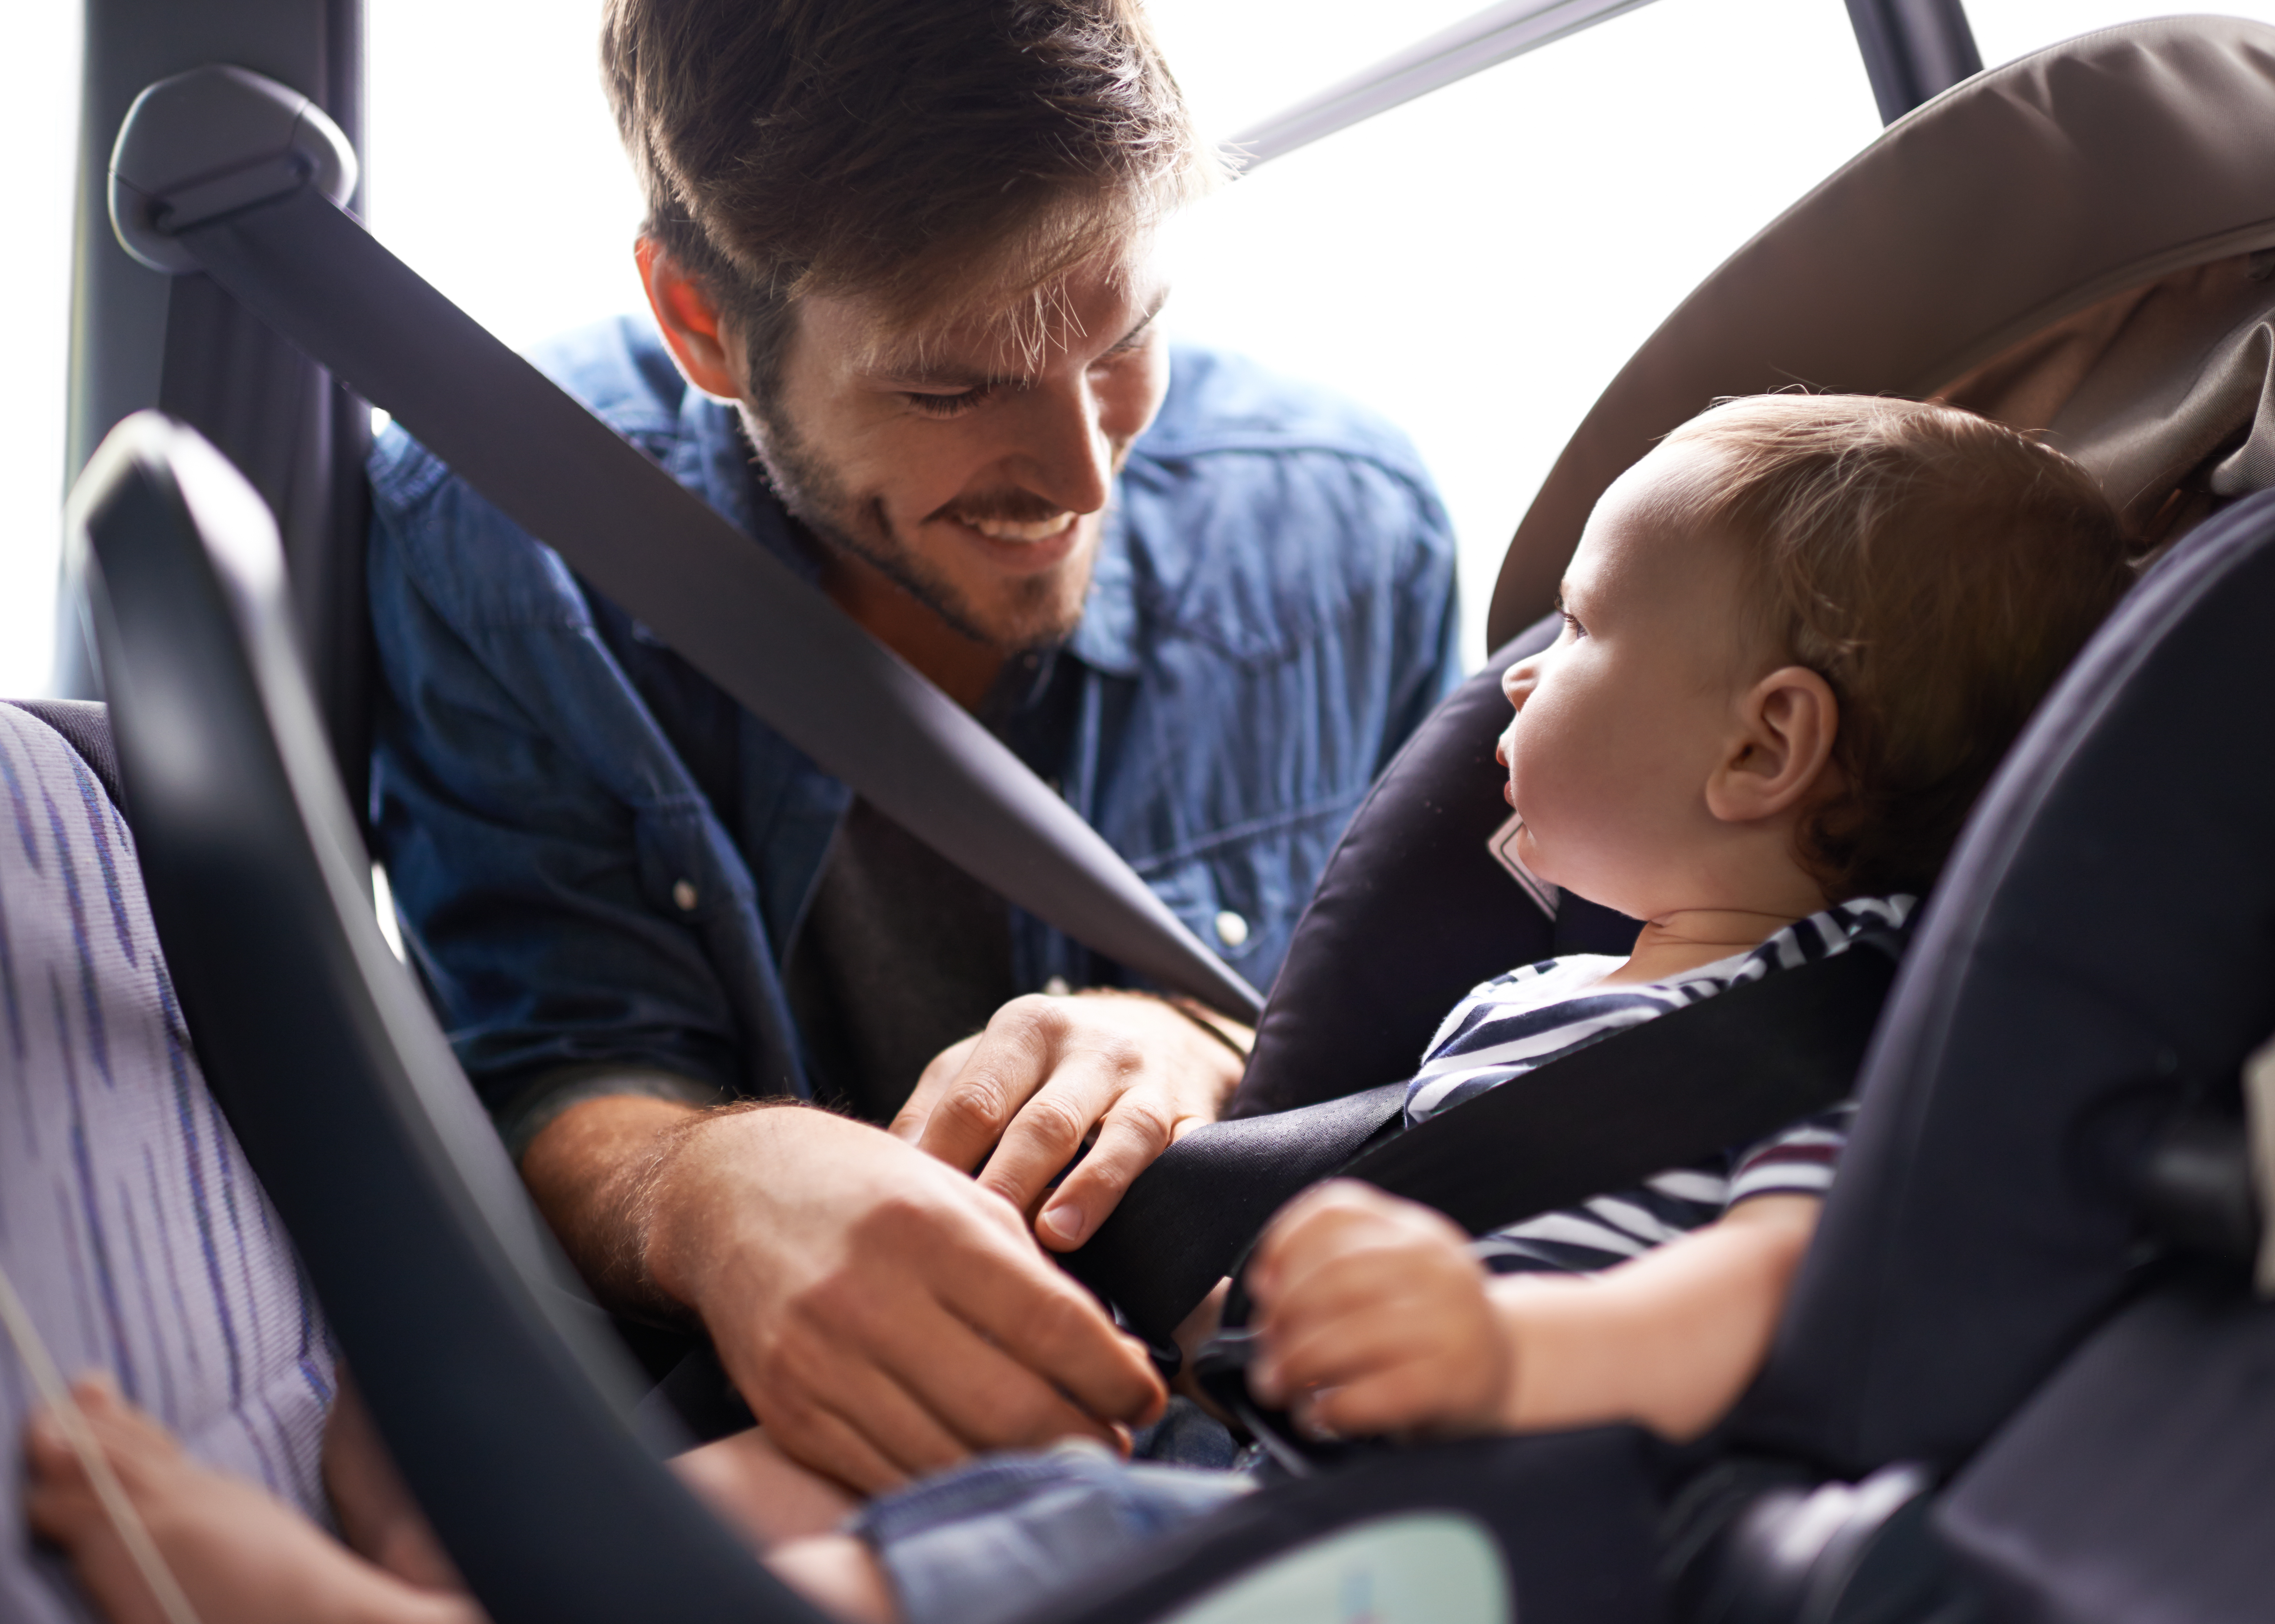 The 5 worst car seat mistakes parents are making - The Washington Post